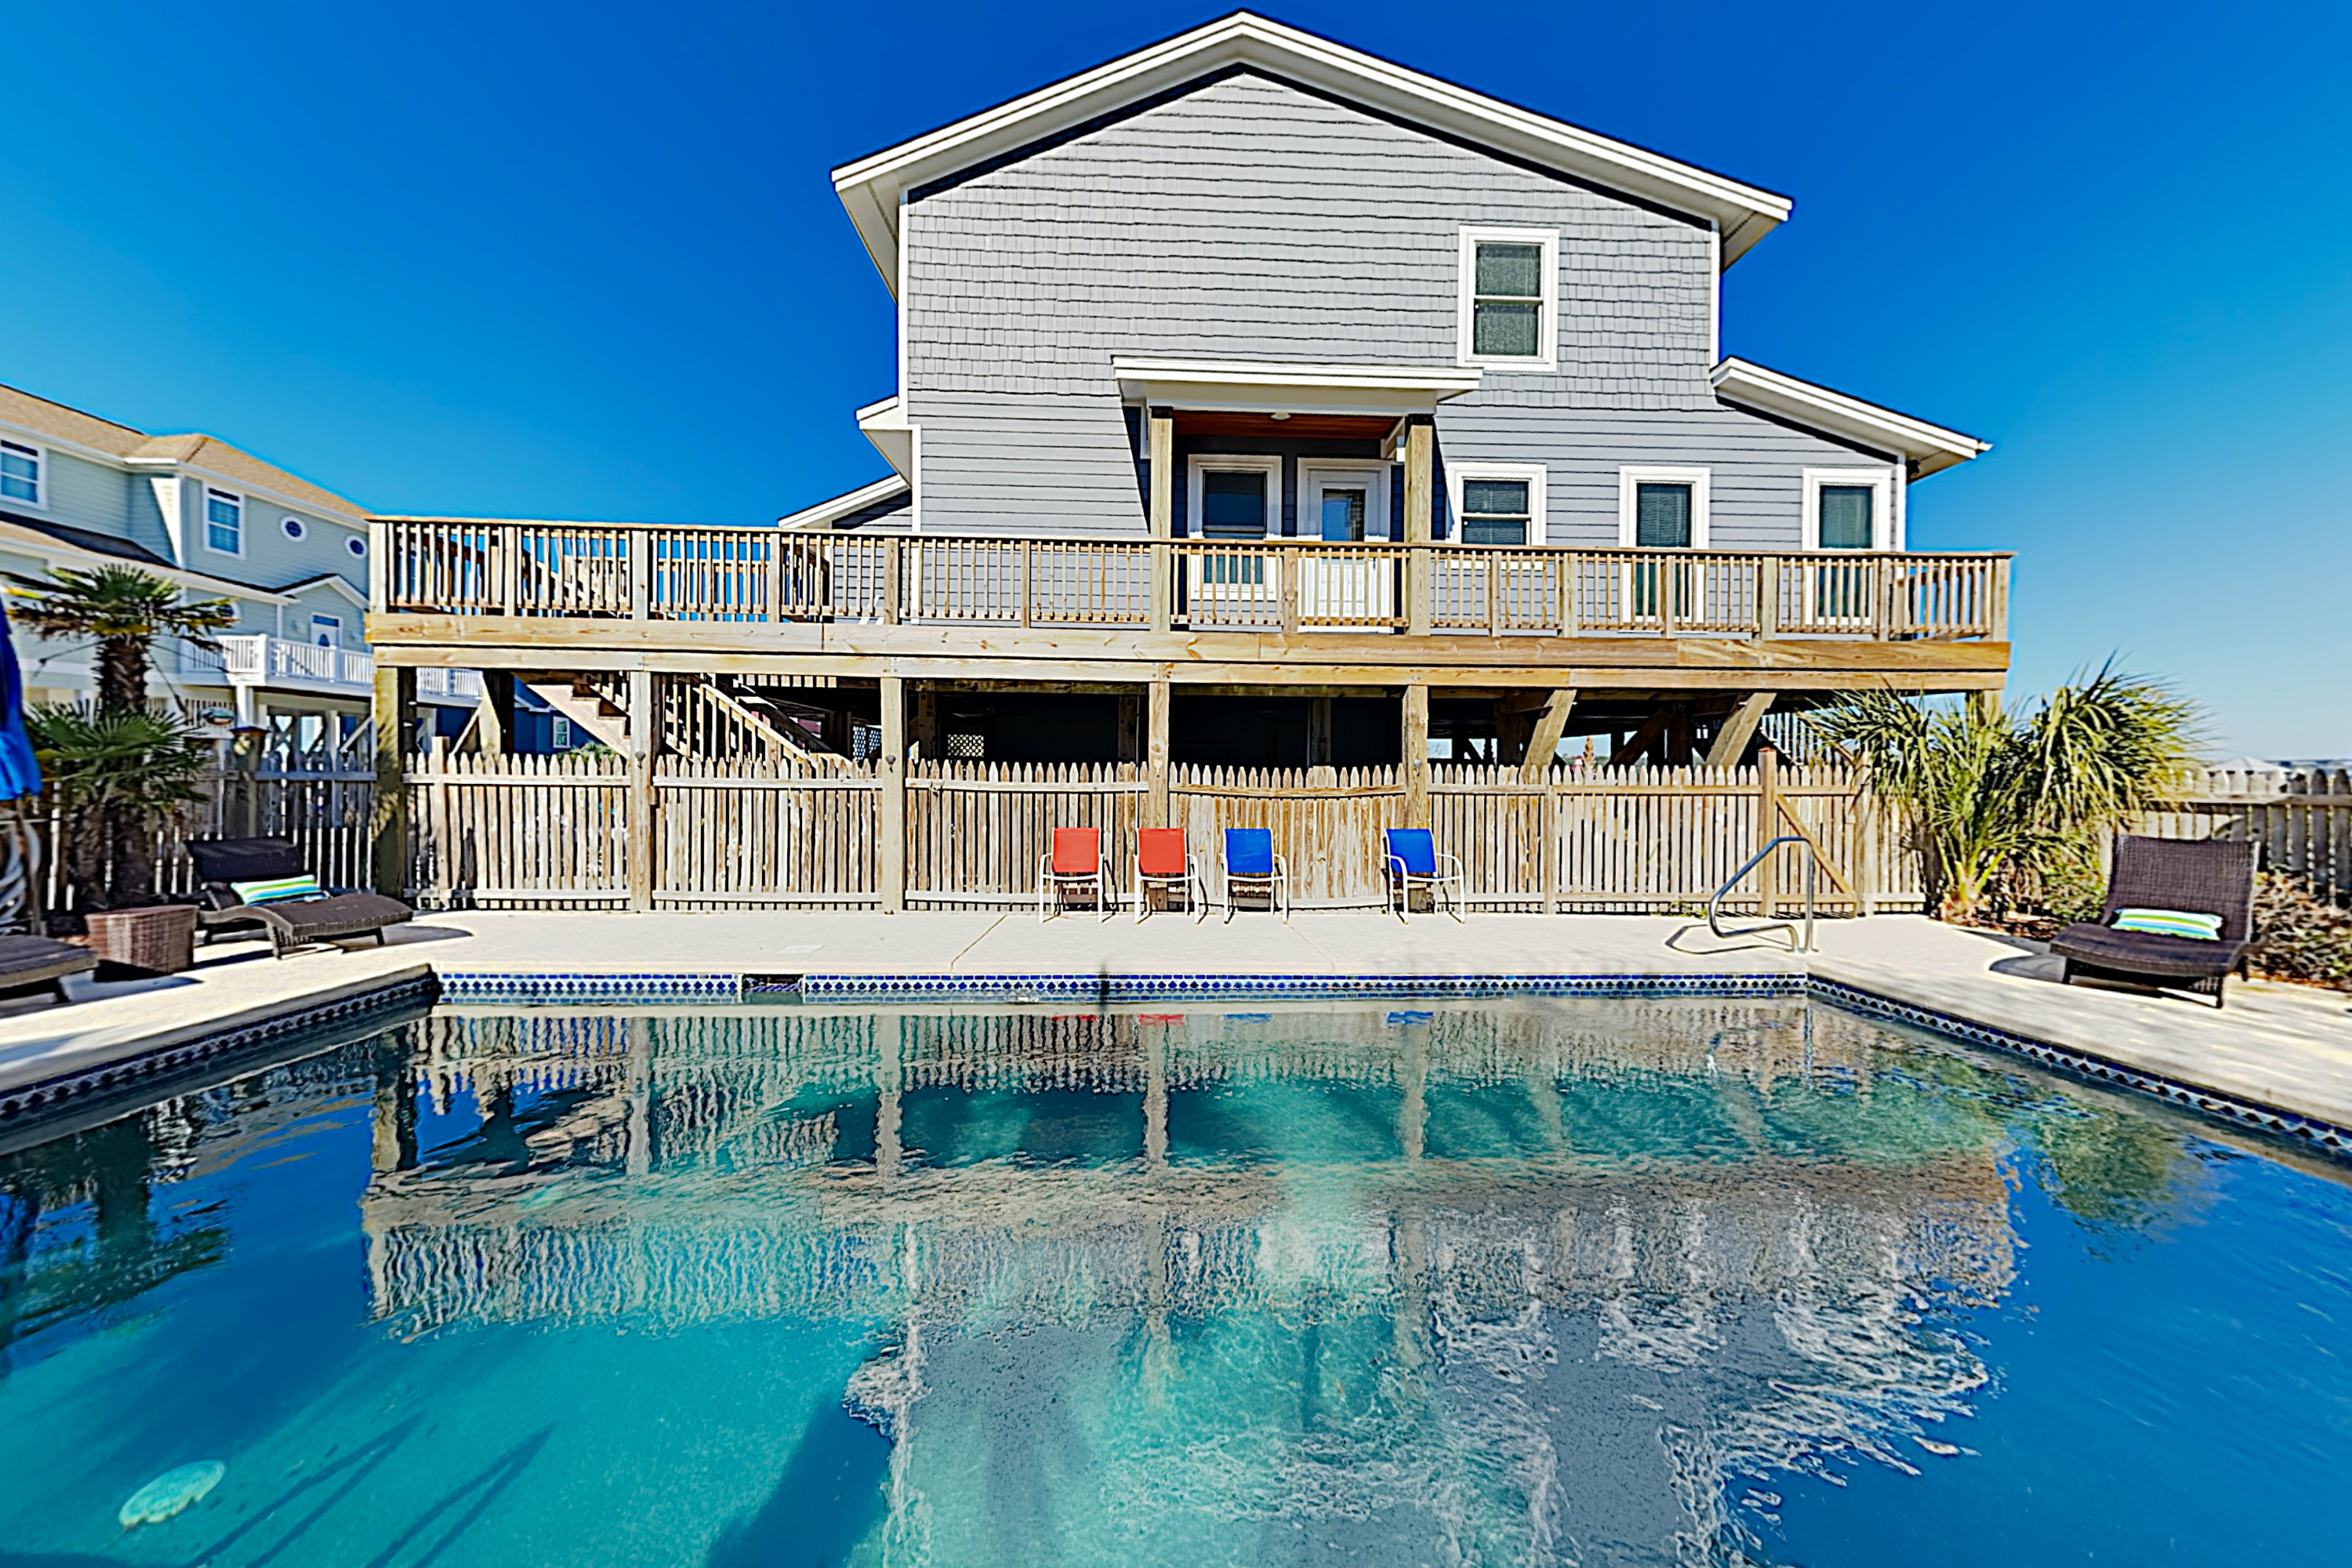 Ocean Isle Beach NC Vacation Rental Welcome to Ocean